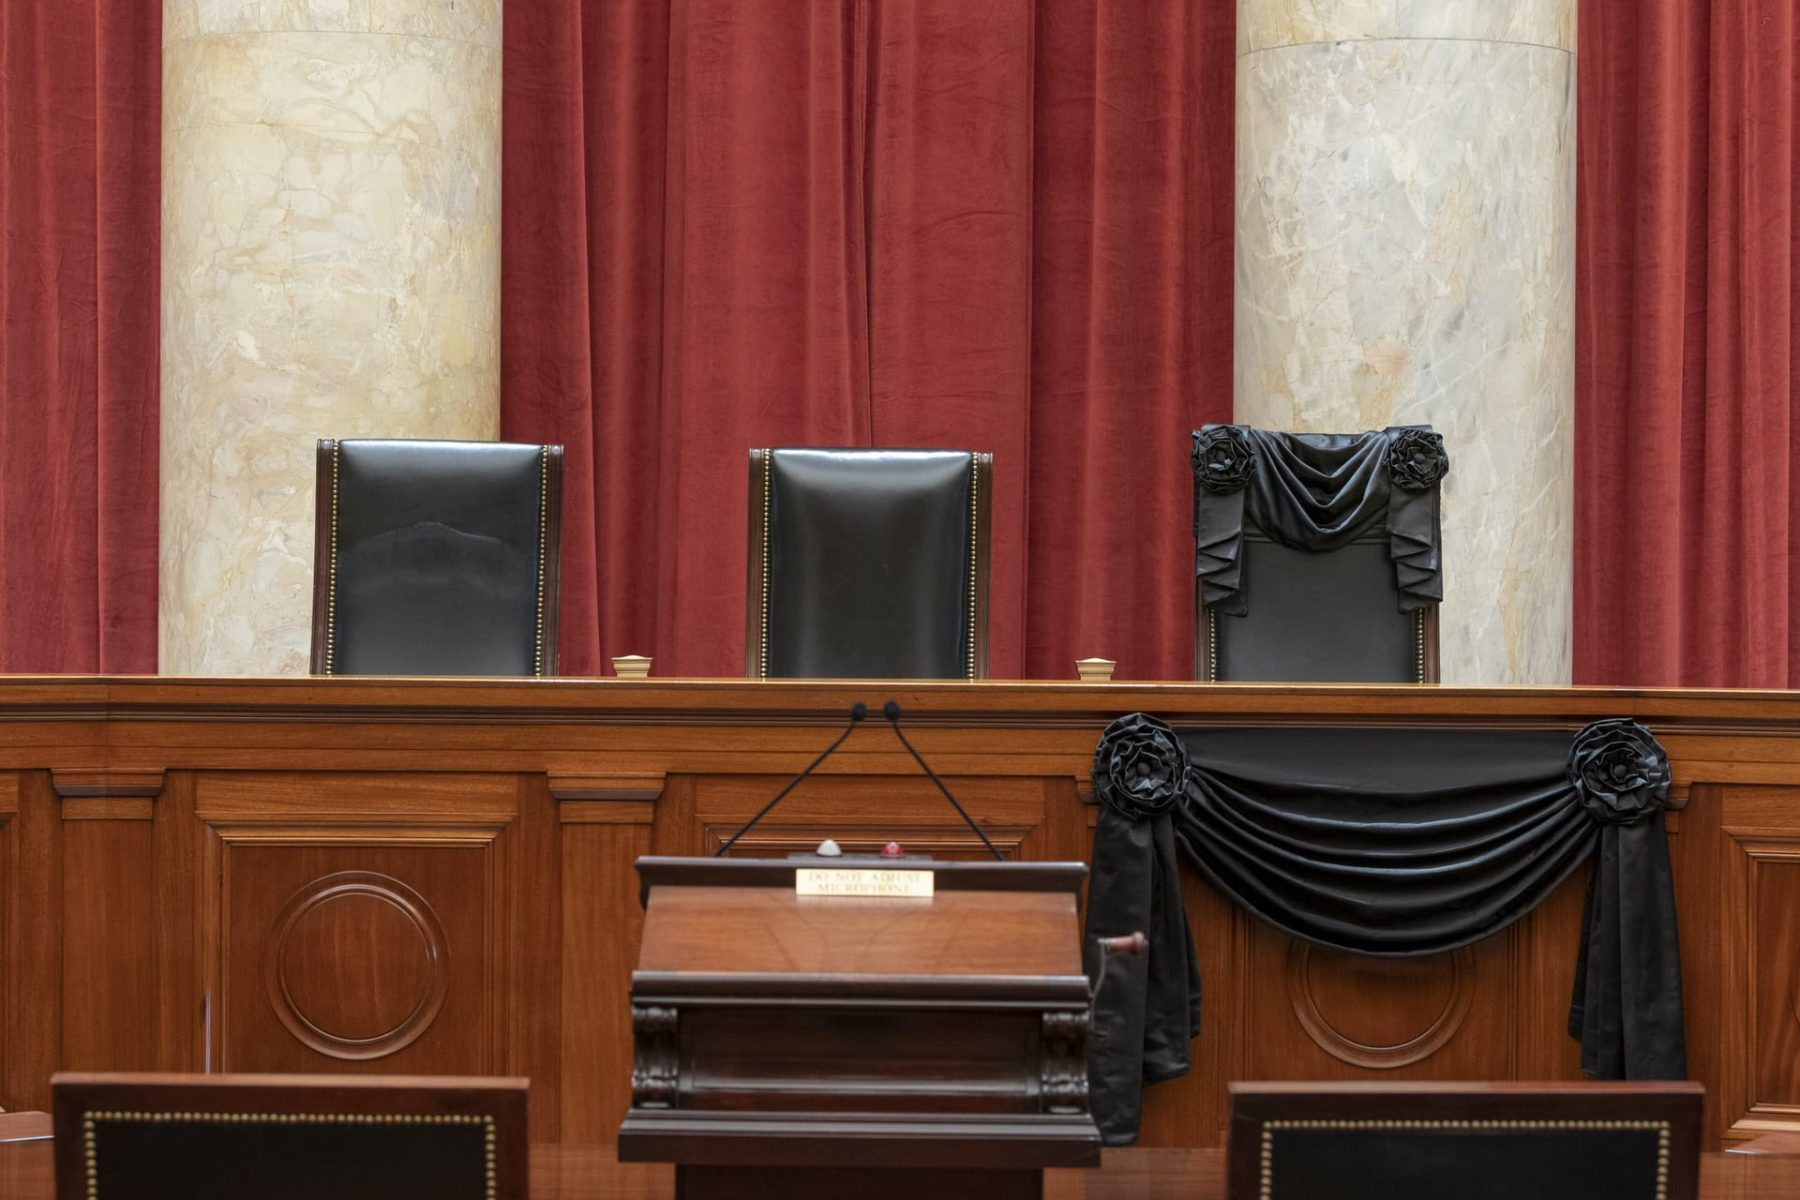 The bench at the U.S. Supreme Court draped in black.